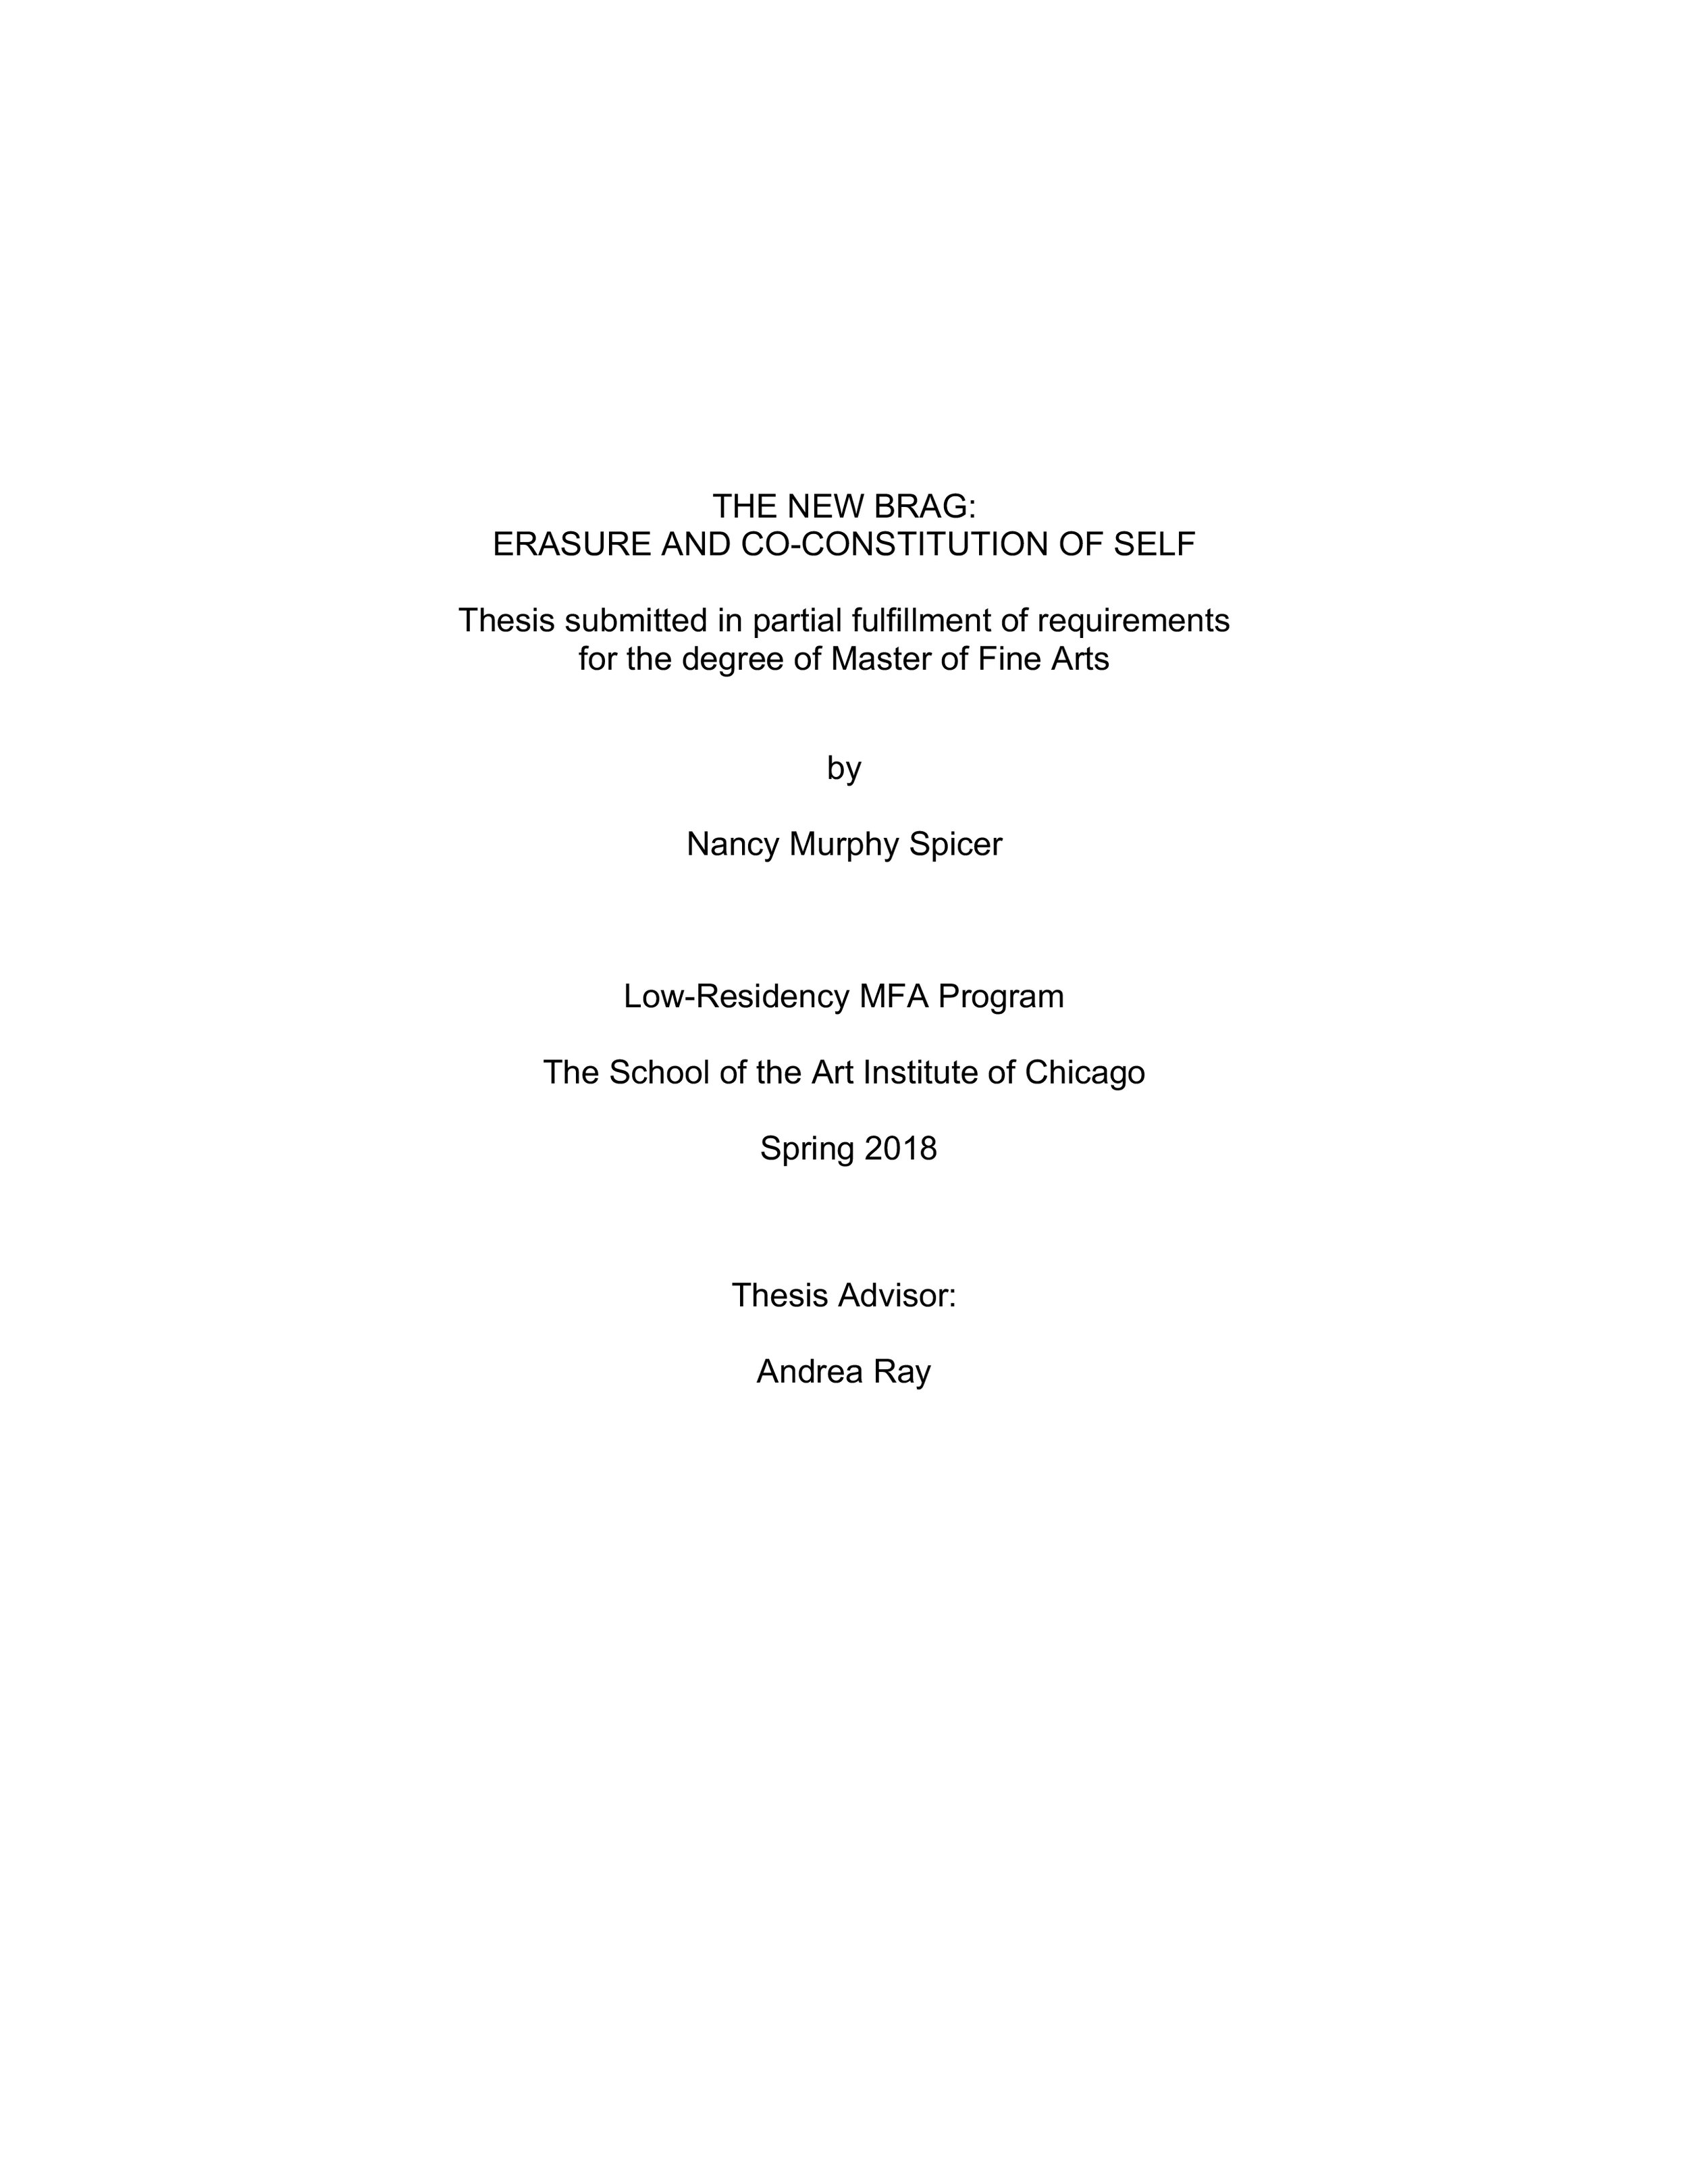 Murphy Spicer SAIC LRMFA THESIS COVER ONLY.jpg